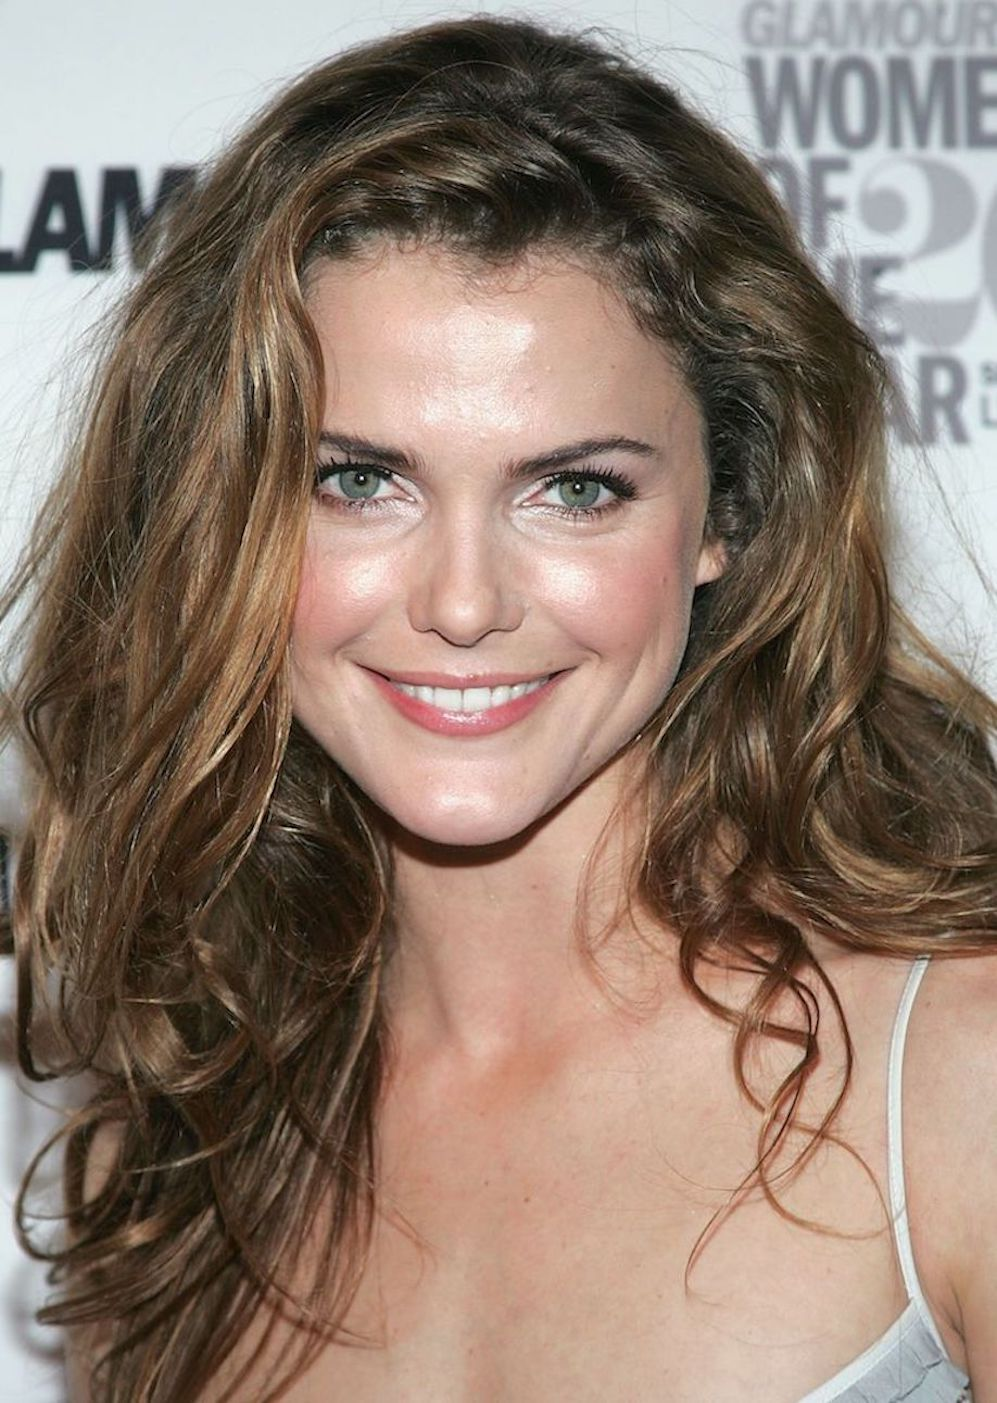 Images Keri Russell nudes (82 photo), Tits, Fappening, Selfie, lingerie 2017